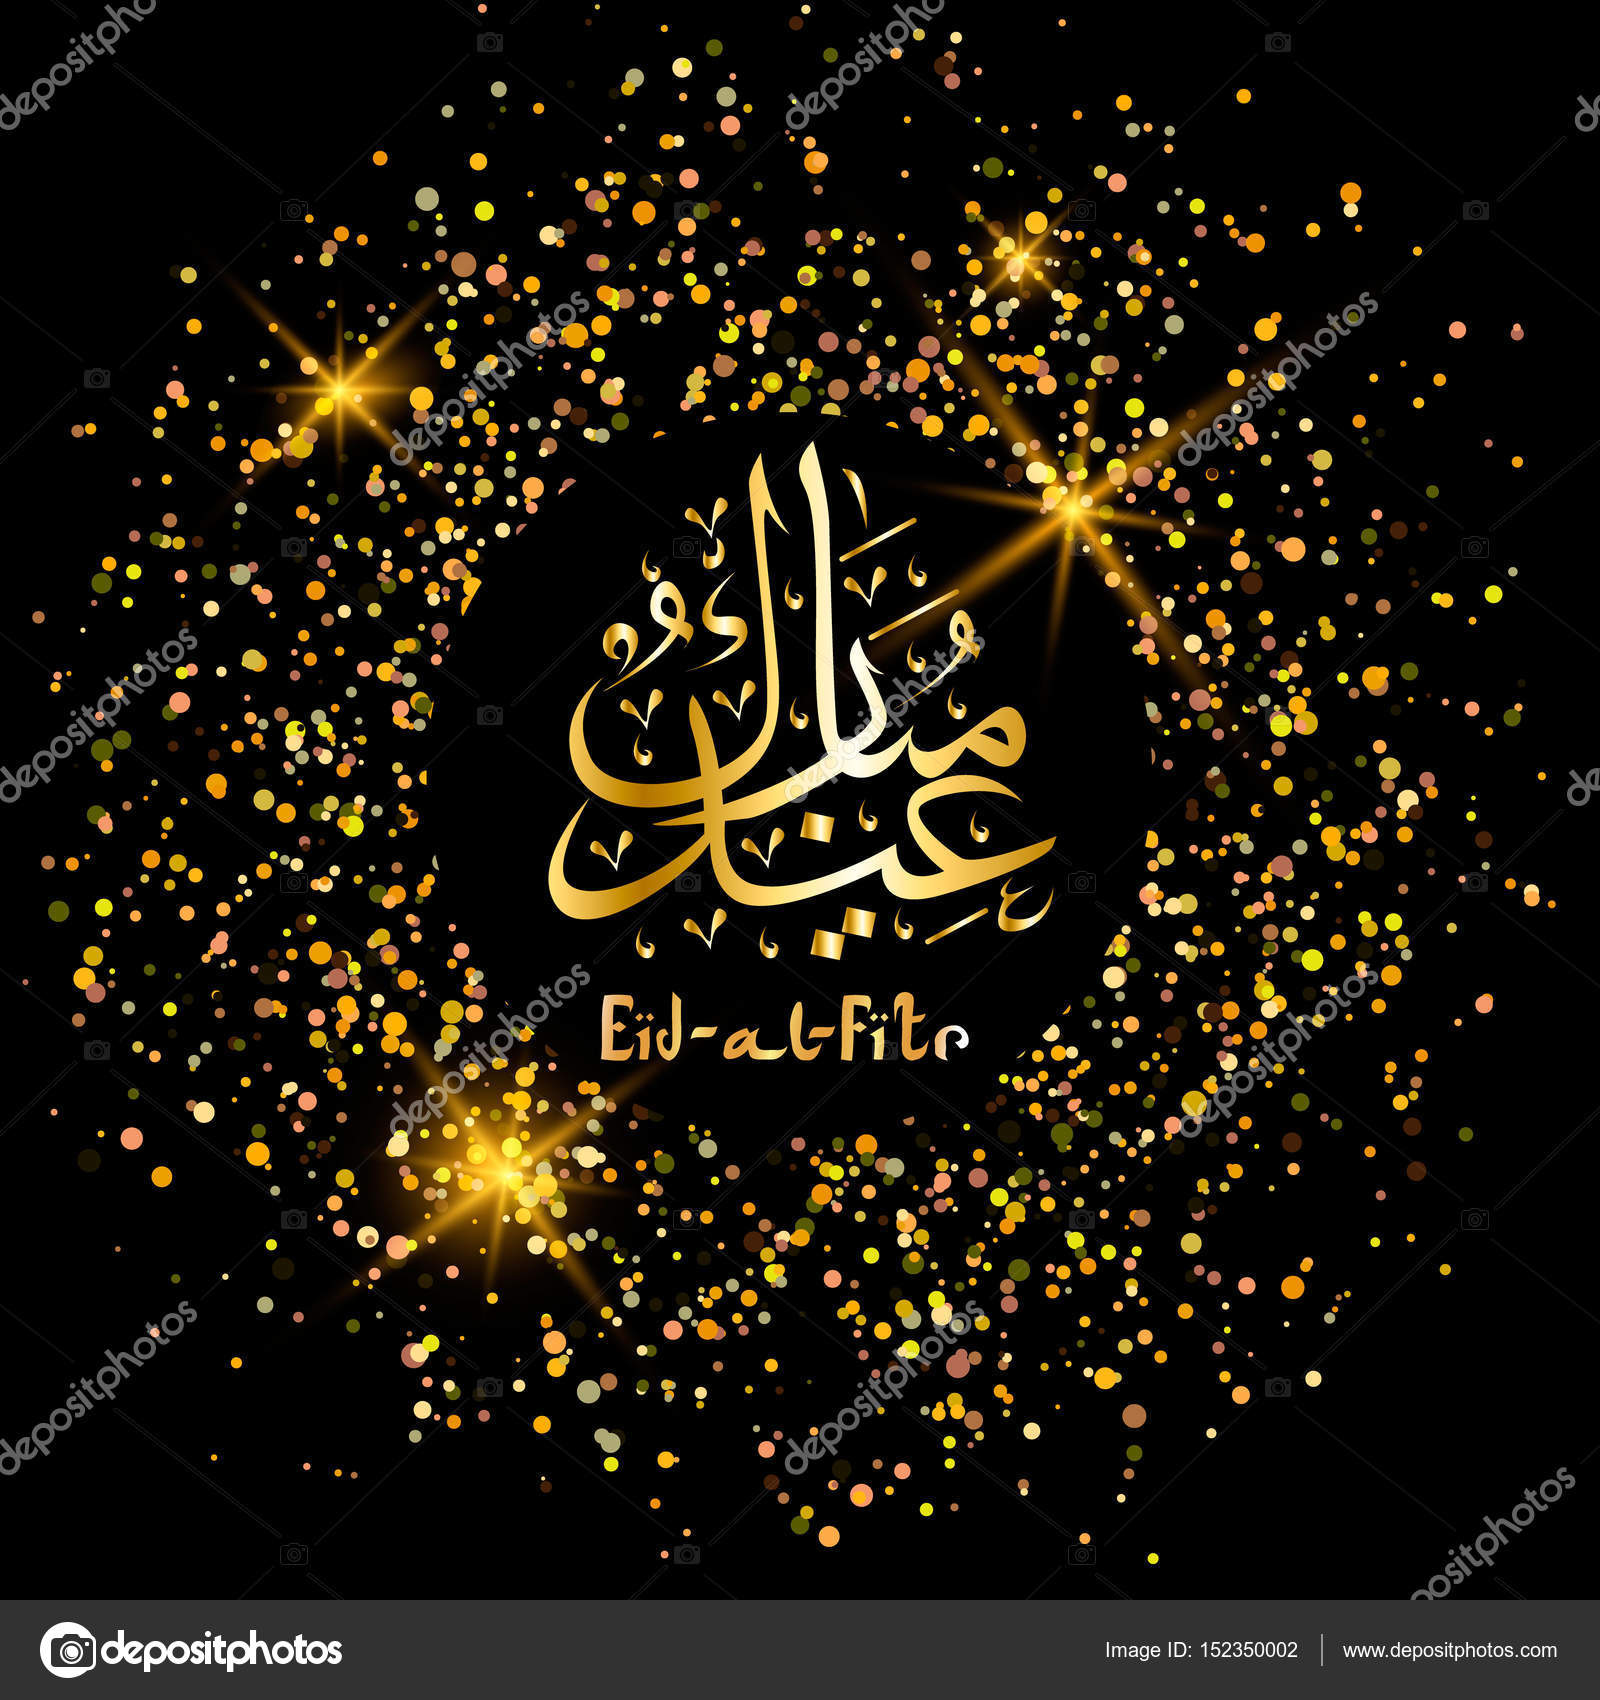 Eid al fitr greeting card arabic lettering translates as eid al eid al fitr greeting card arabic lettering translates as eid al adha feast m4hsunfo